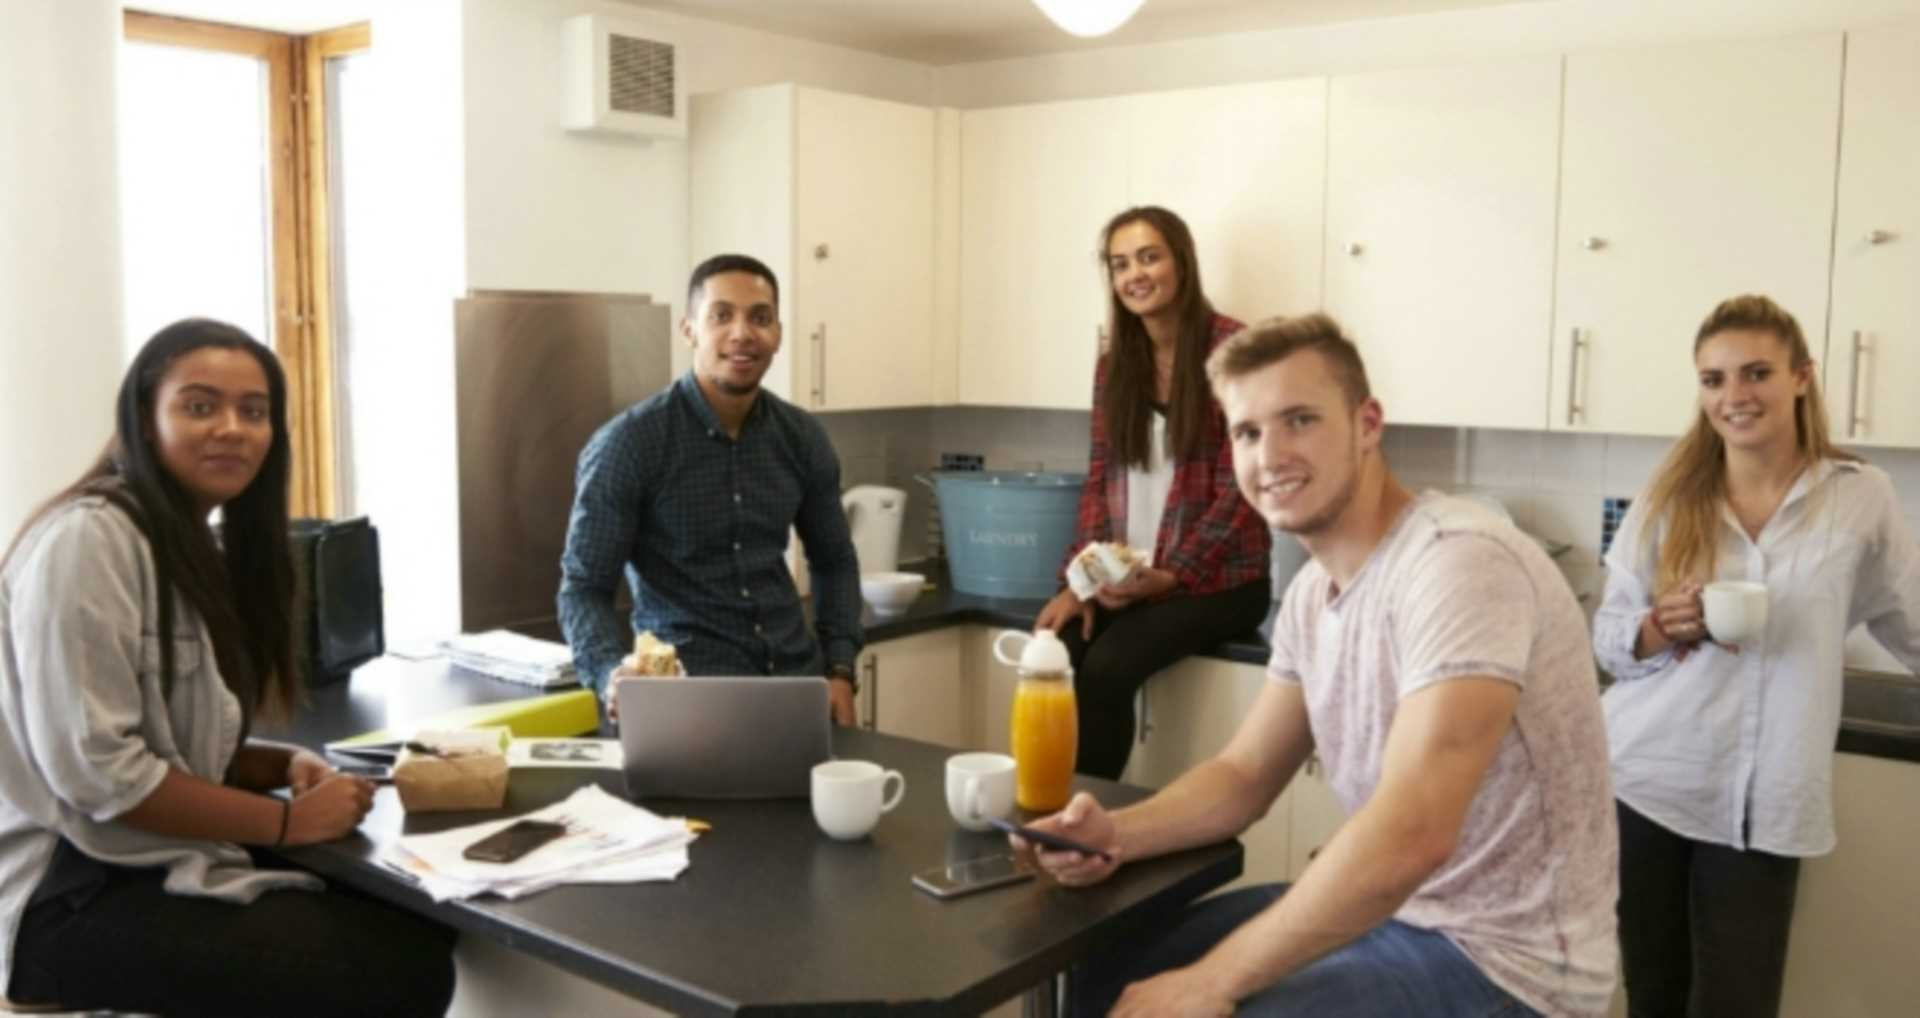 Top tips for finding student accomodation